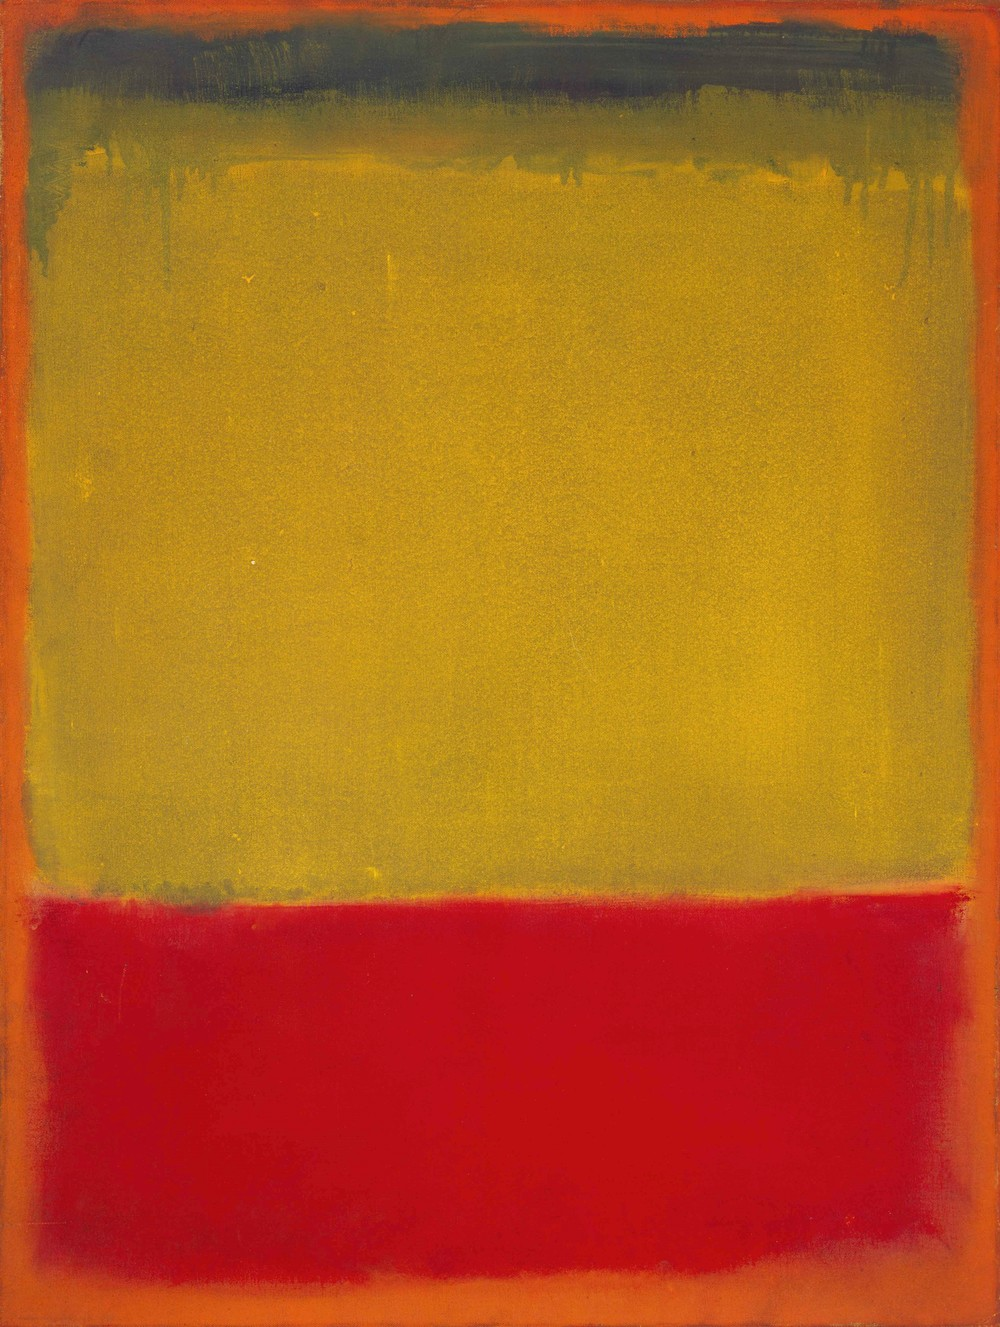 Mark Rothko, Untitled, 1949 © 1998 Kate Rothko Prizel and Christopher Rothko, Courtesy Cristopher Rothko